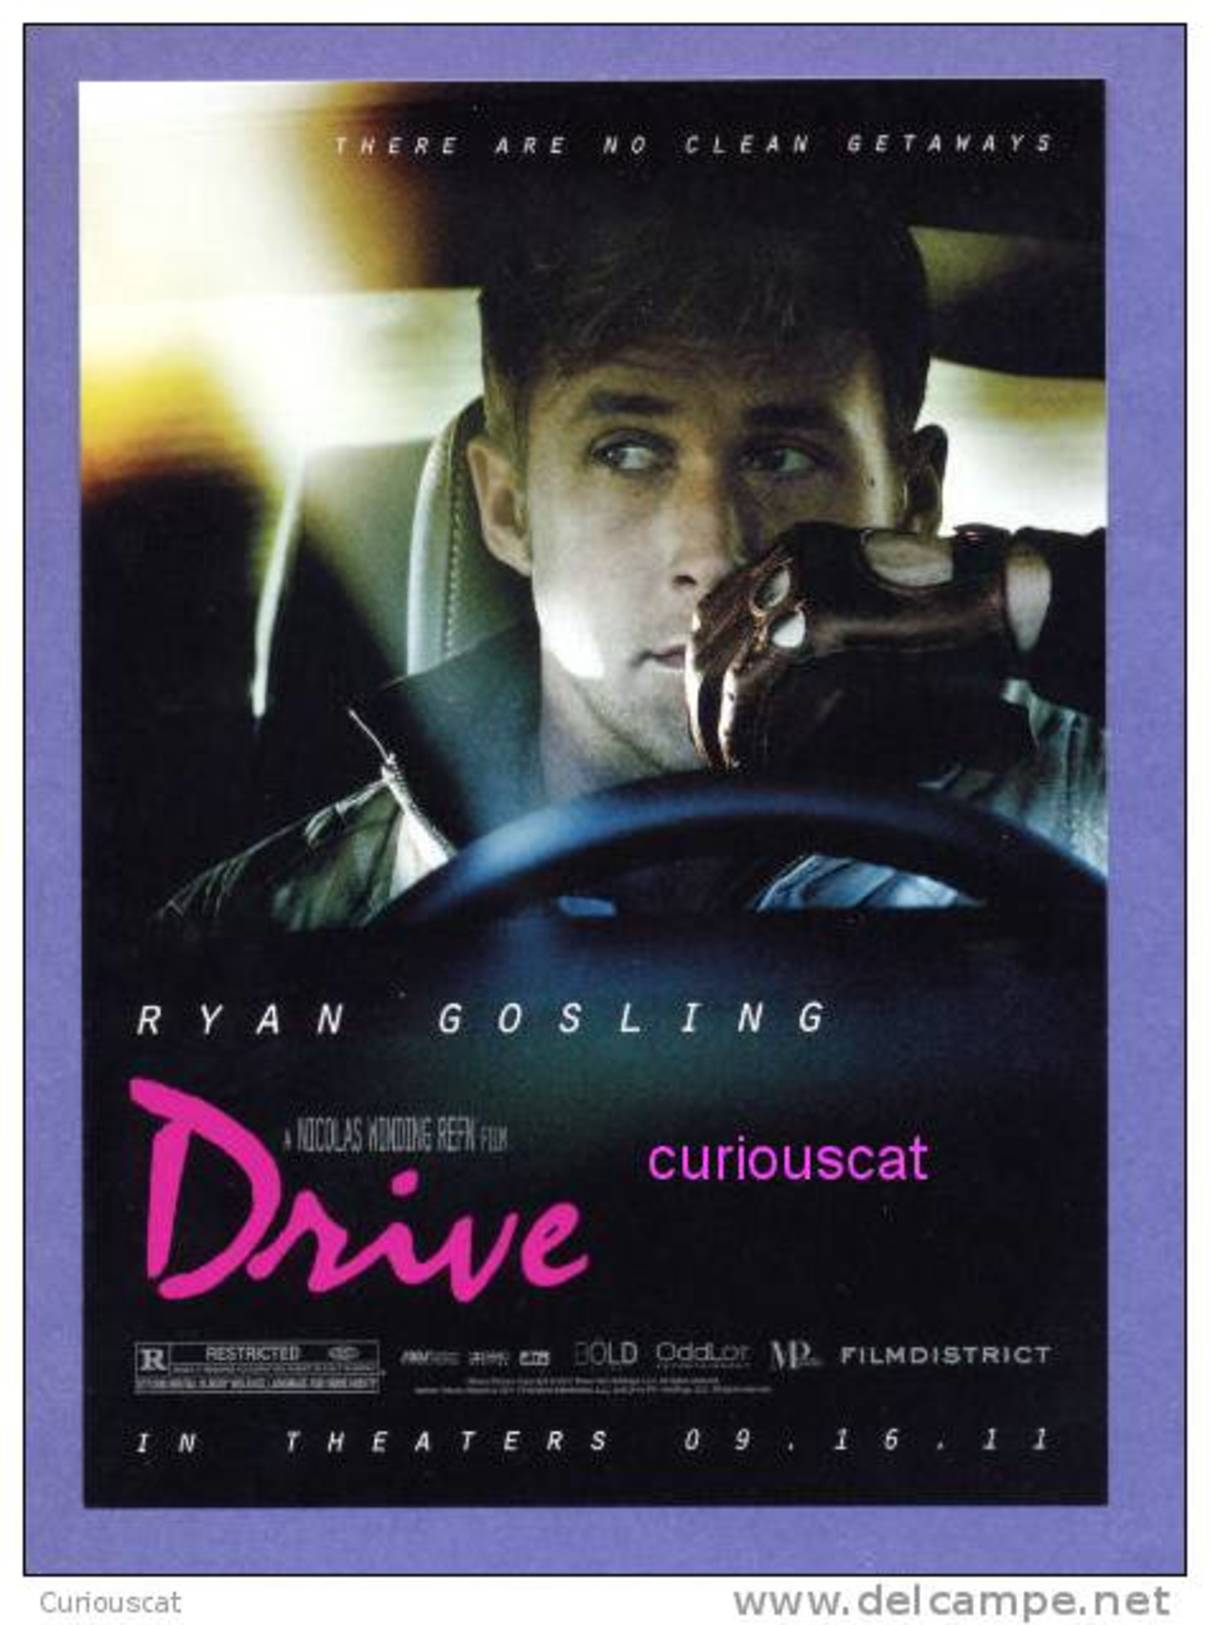 POSTCARD FILM CINEMA POSTER ADVERTISEMENT CARD For FILM MOVIE    DRIVE    With RYAN GOSLING - Posters On Cards